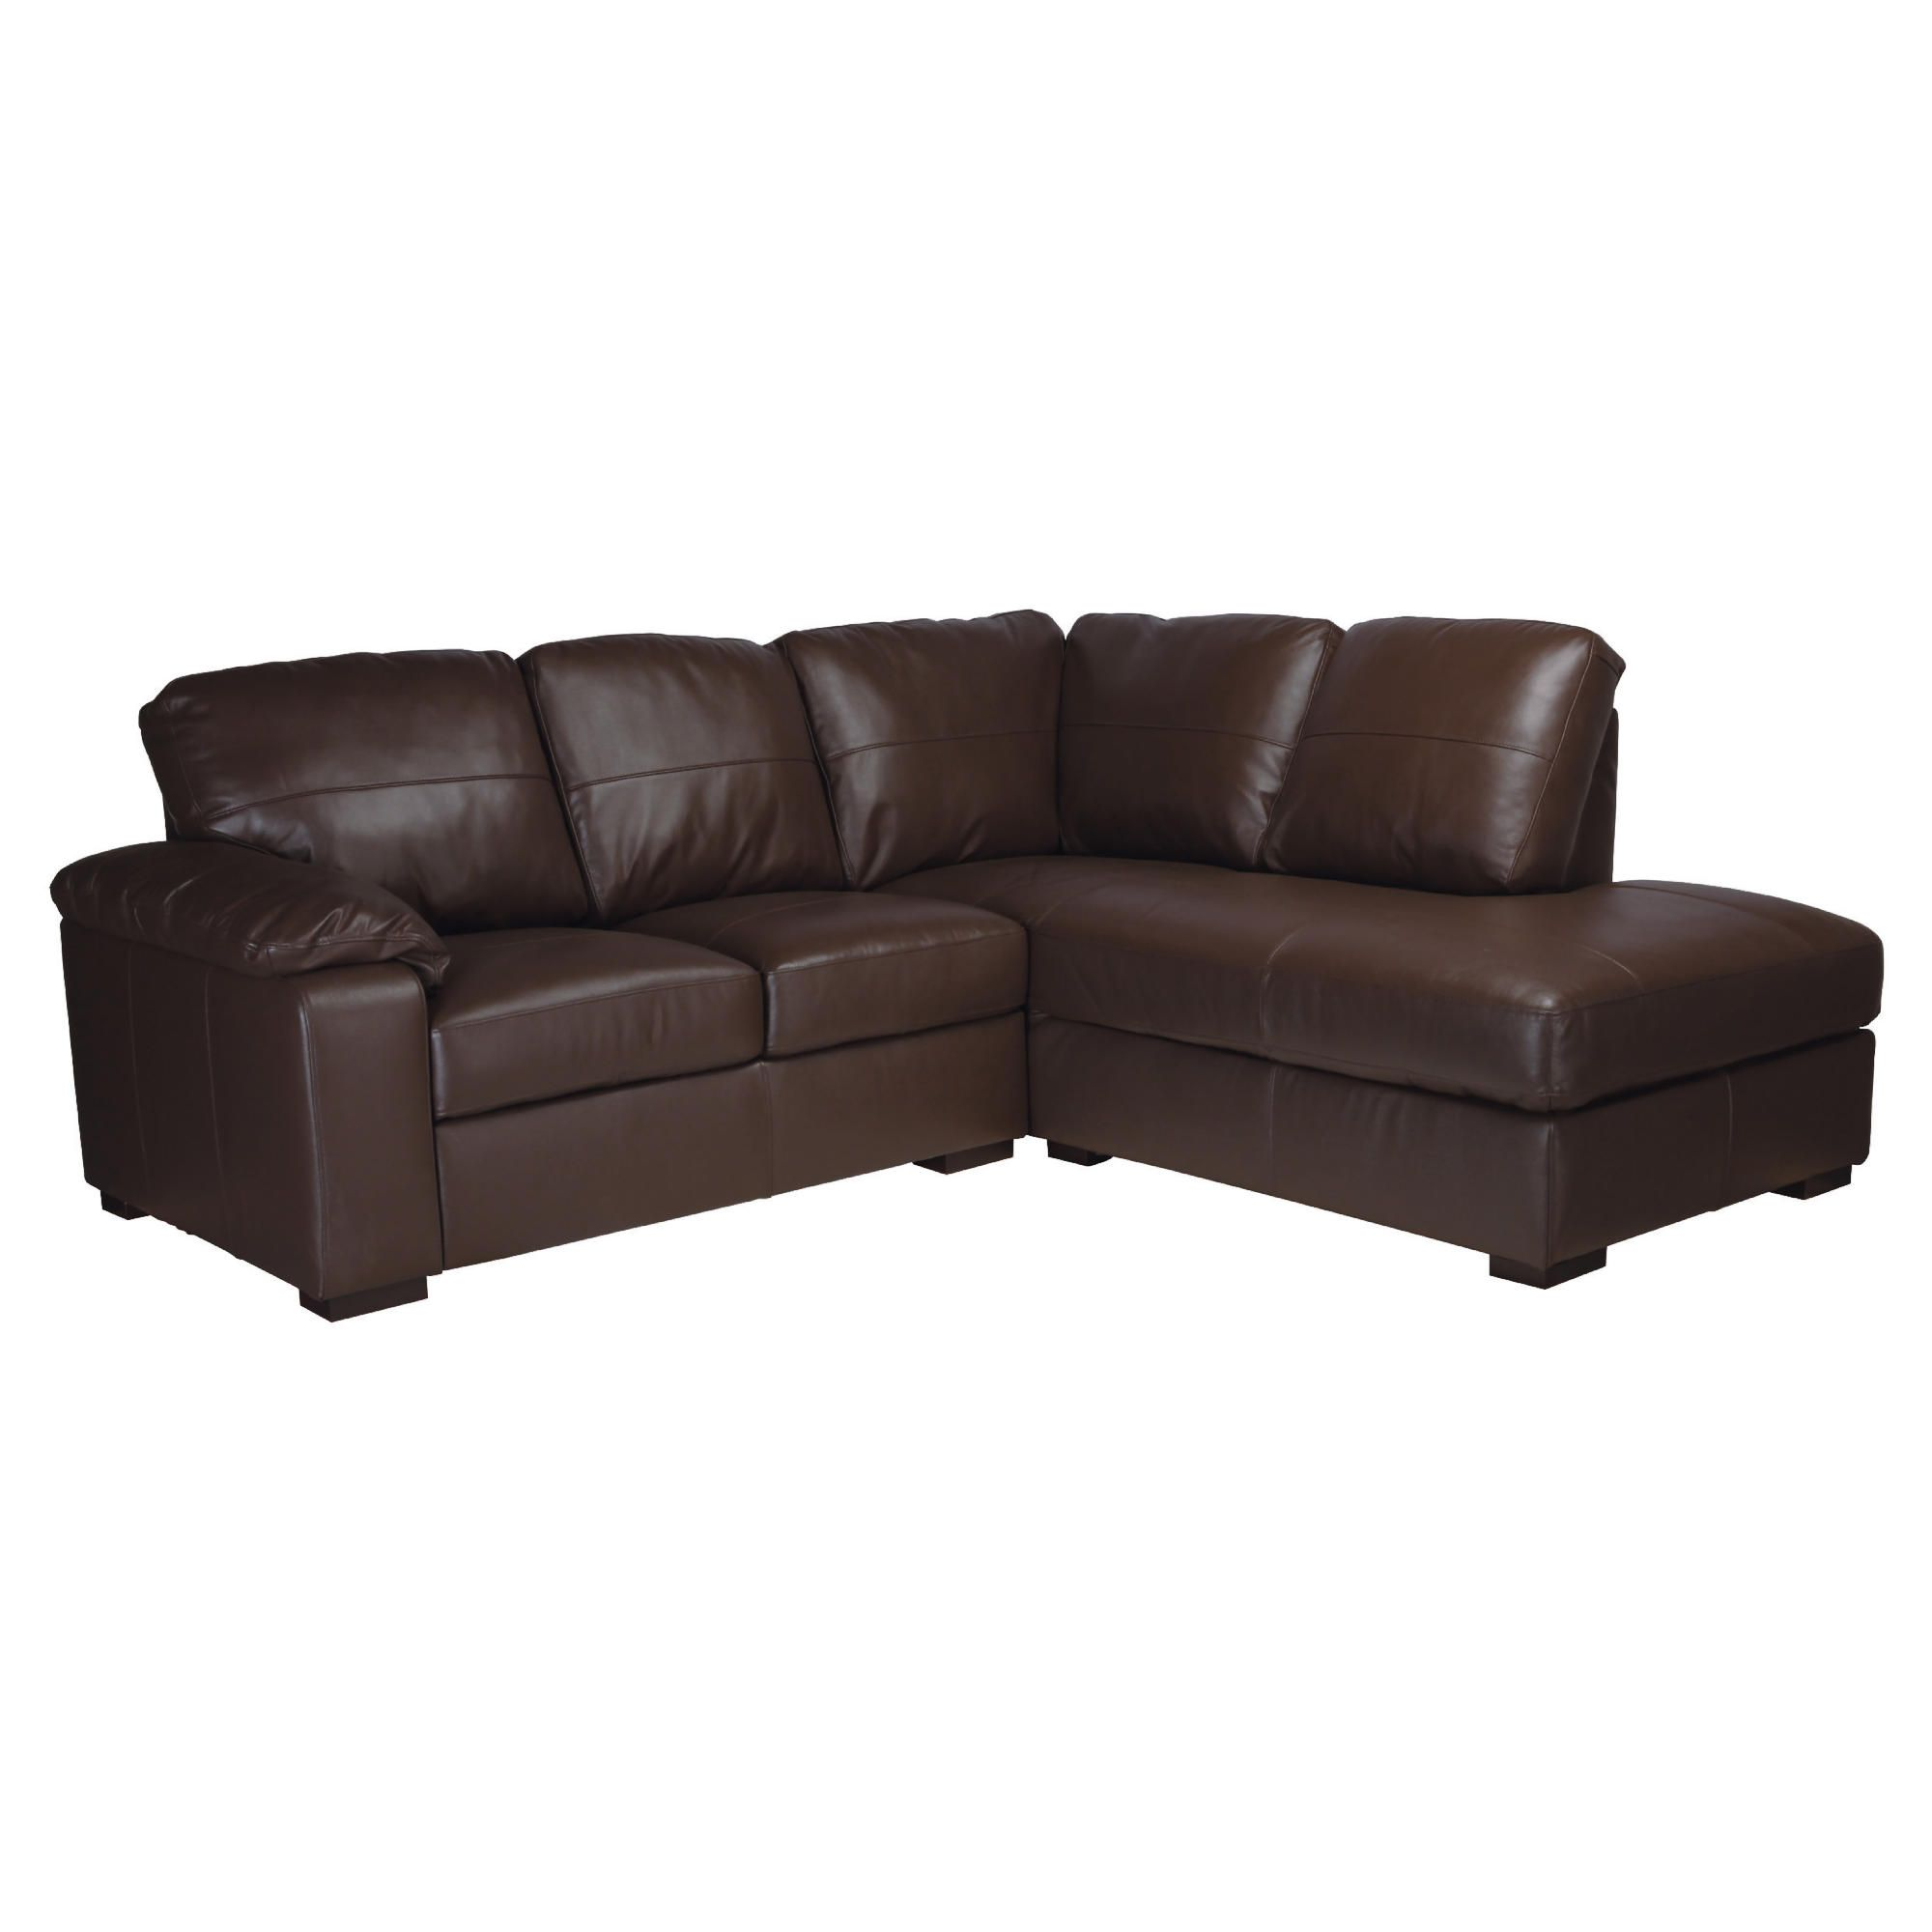 Ashmore Leather Corner Sofa, Brown Right Hand Facing at Tesco Direct